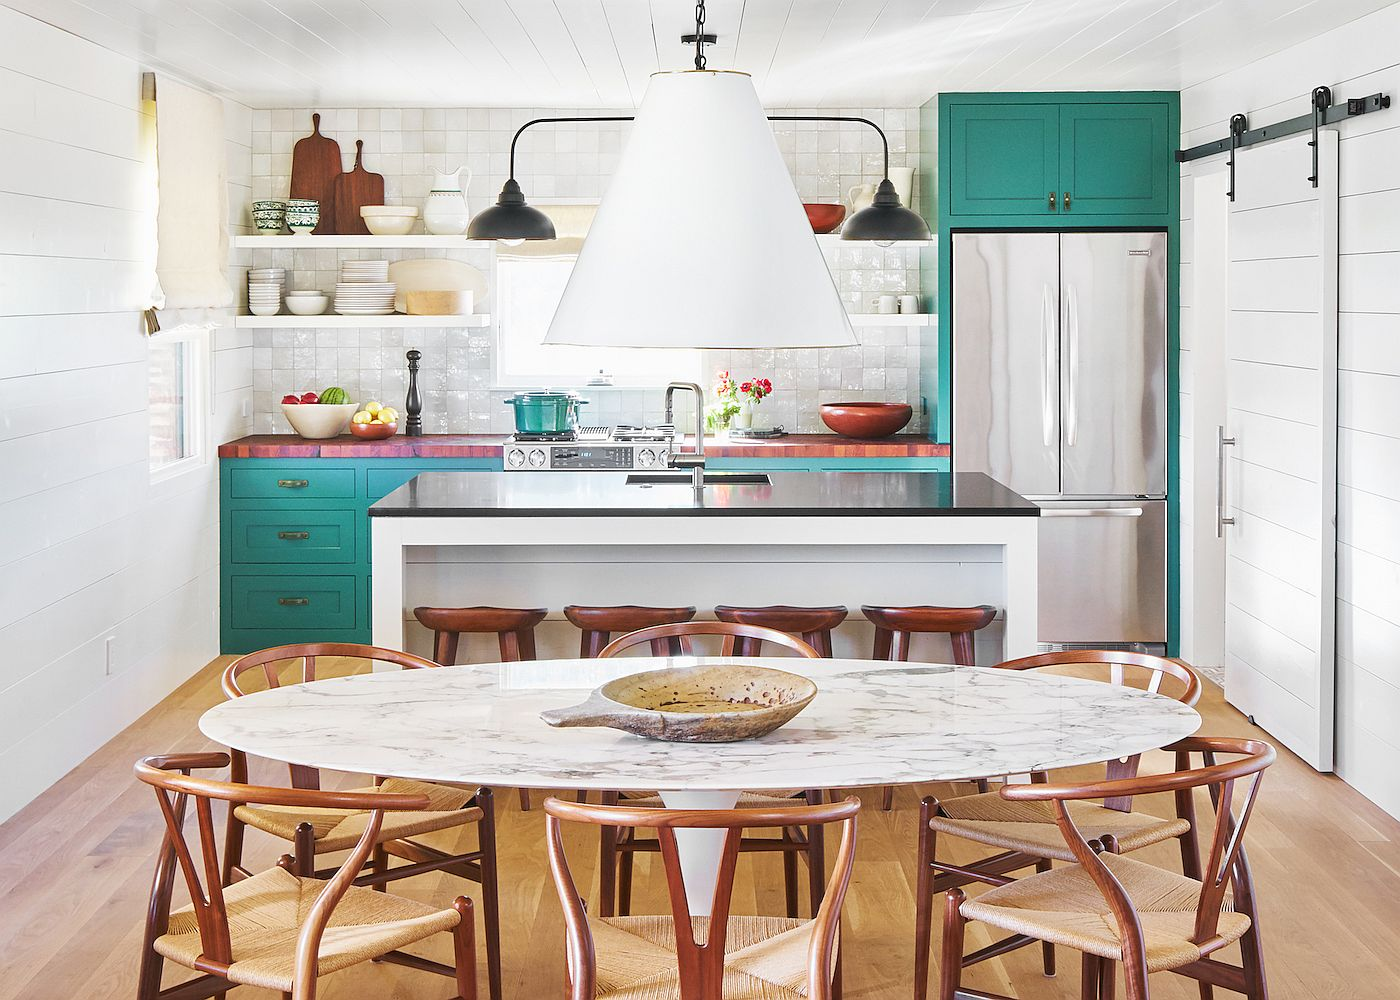 Small-and-elegant-ranch-style-kitchen-in-Texas-home-with-tiled-backsplash-and-teal-cabinets-47382